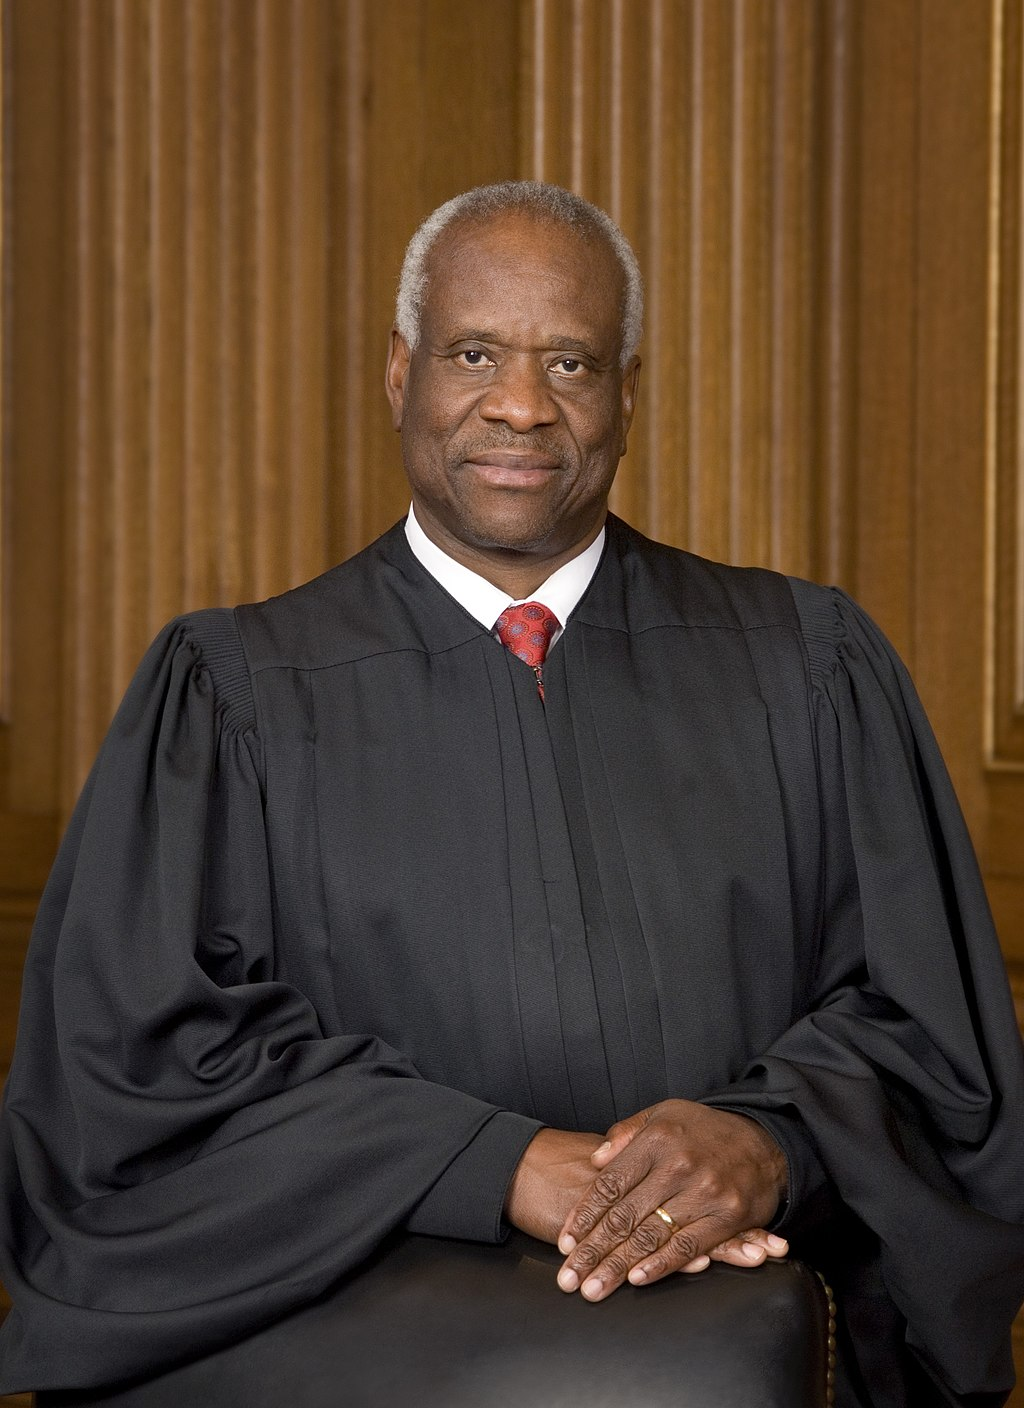 ClarenceThomas - (lmao we're not going there)